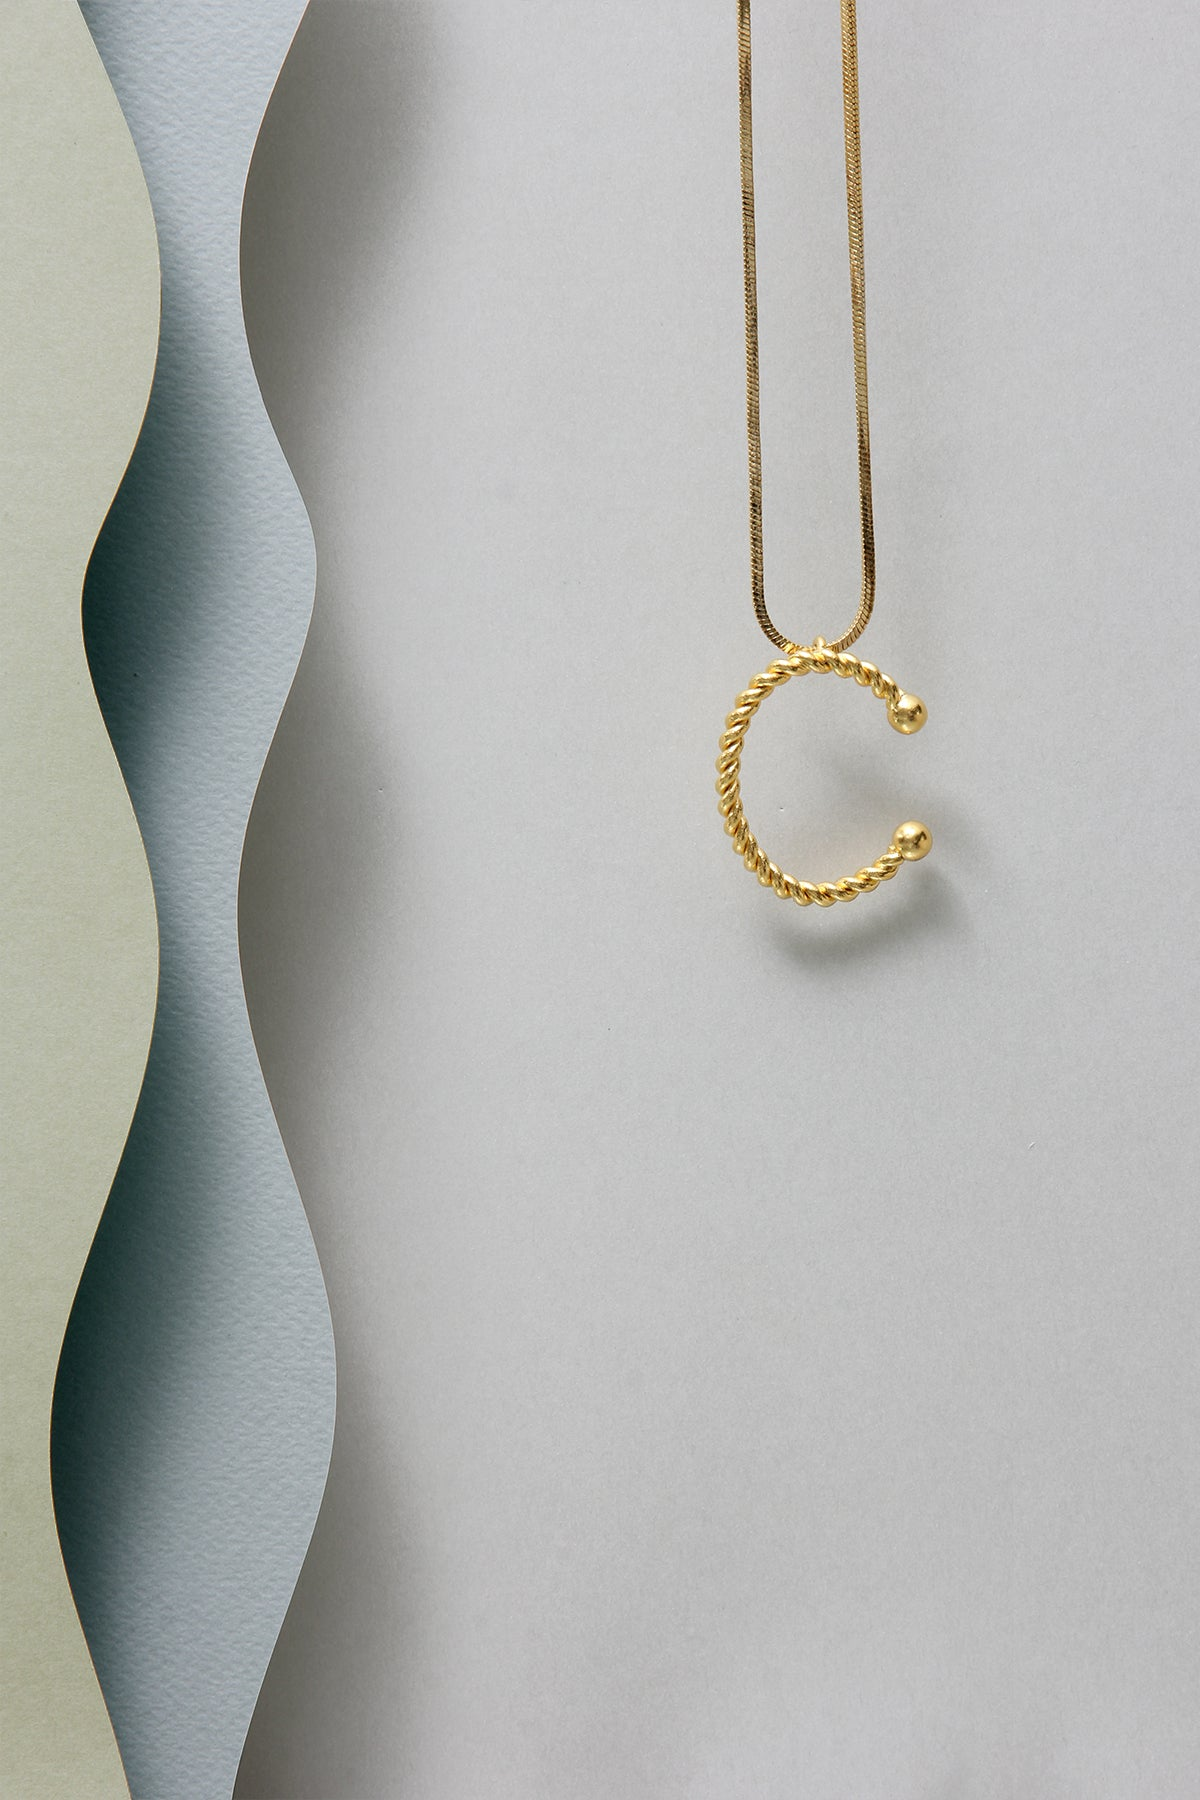 THE INITIAL C NECKLACE